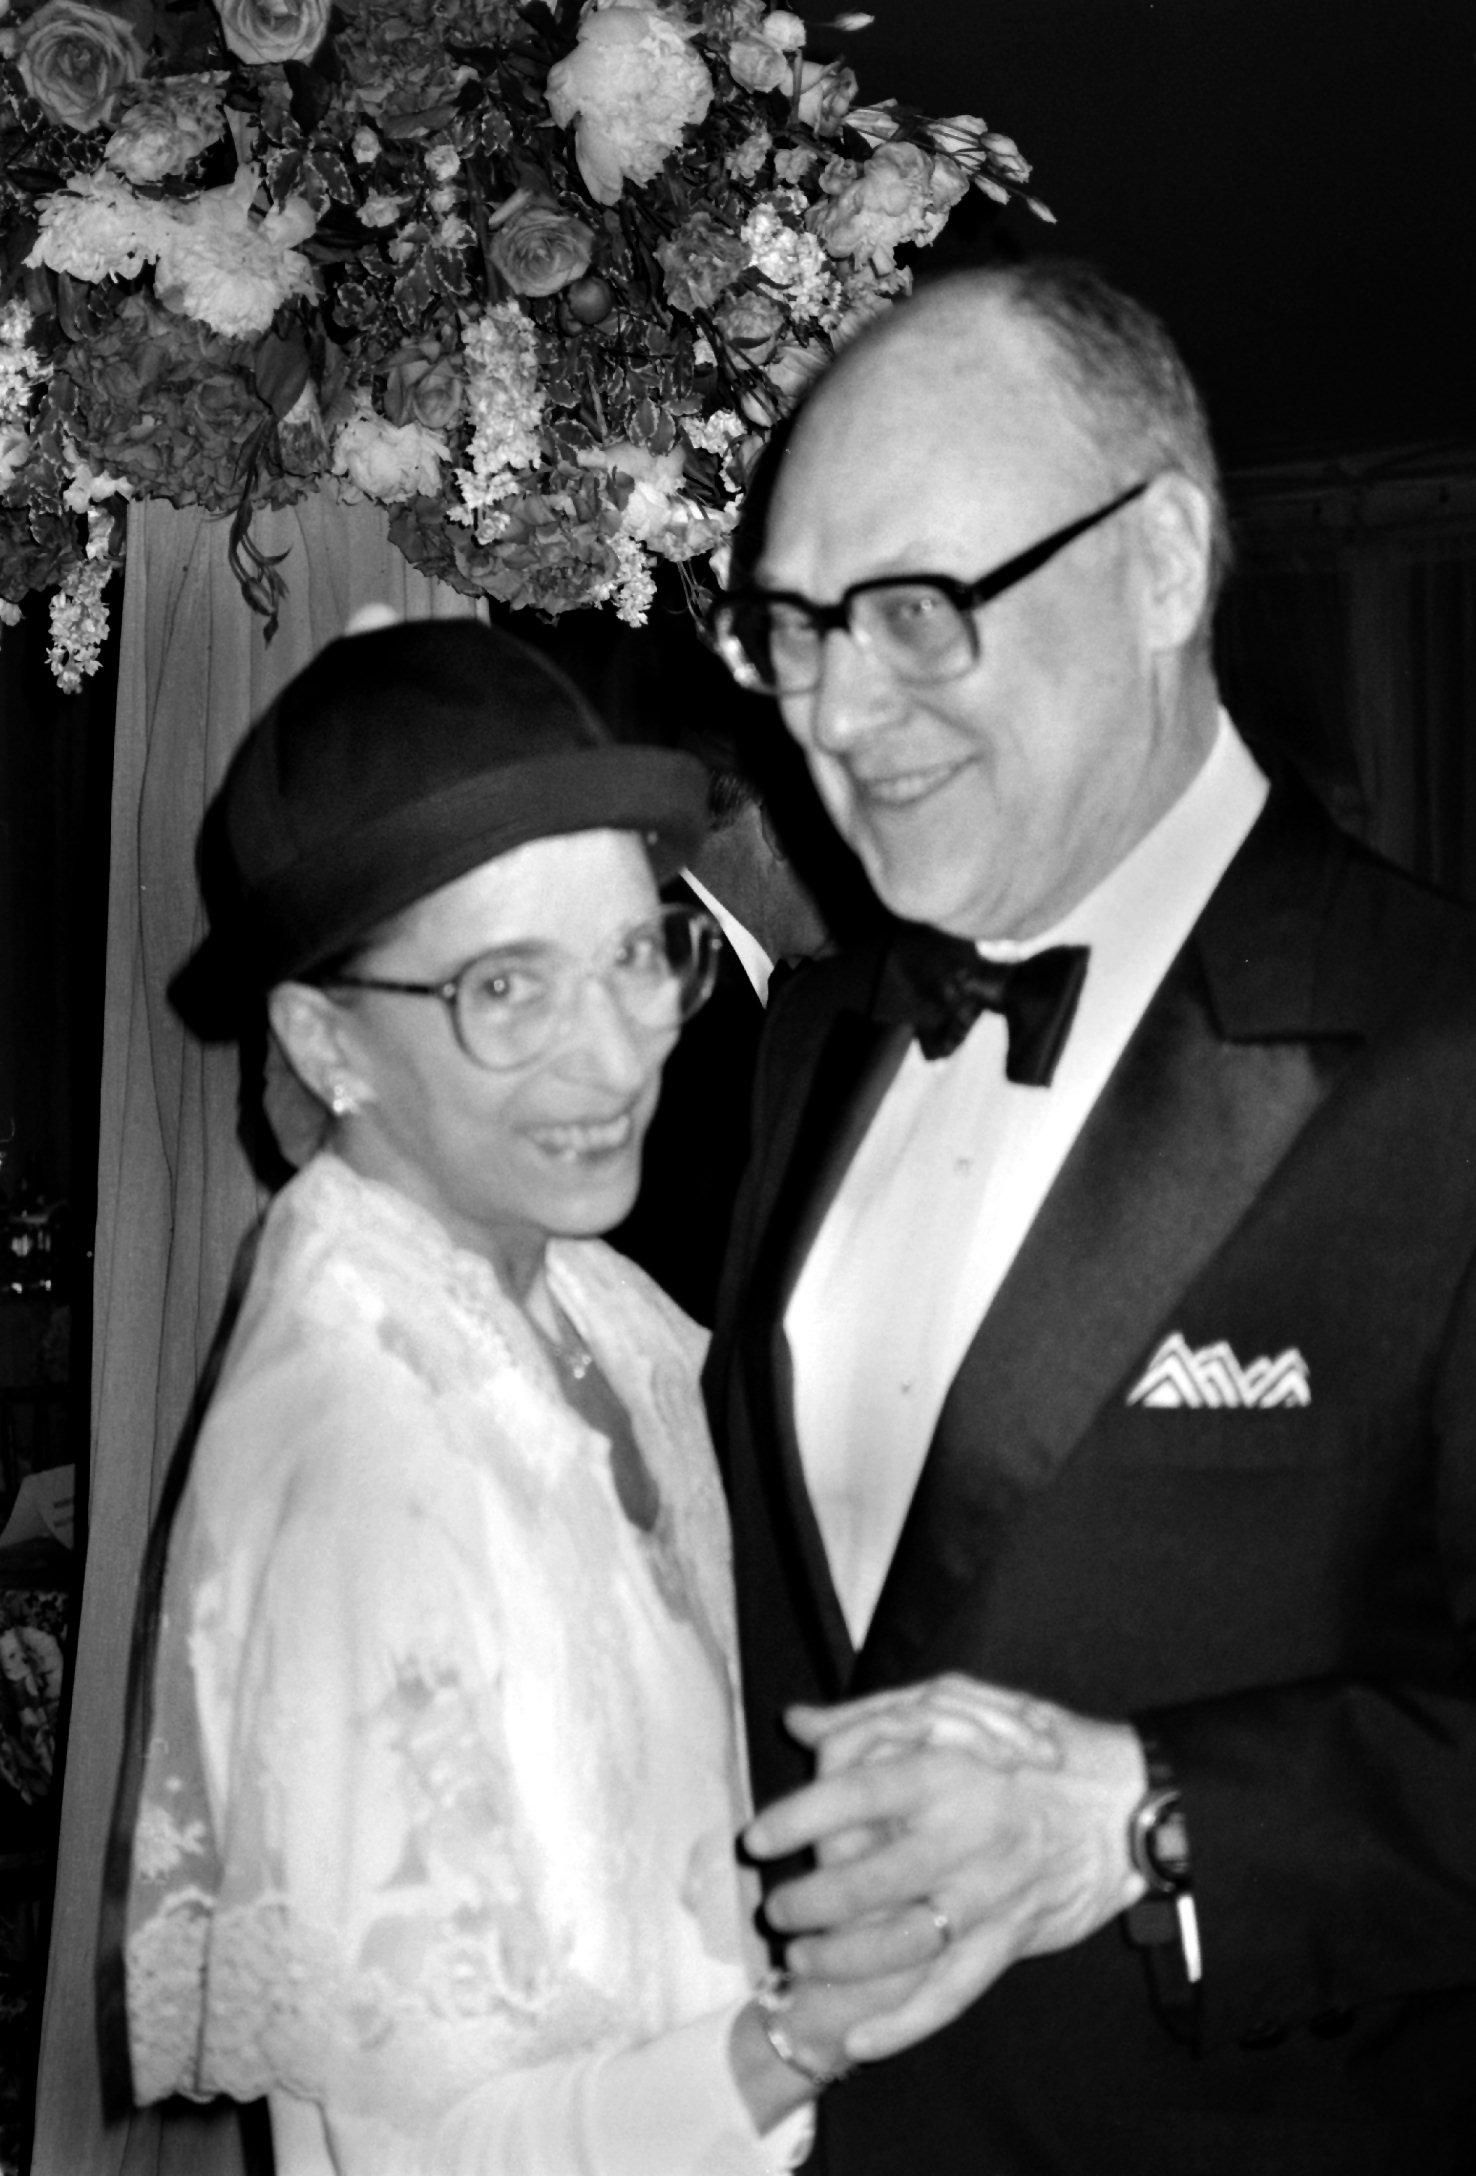 Ruth Bader Ginsburg and Martin Ginsburg at a formal event, Washington, DC. | Source: Getty Images